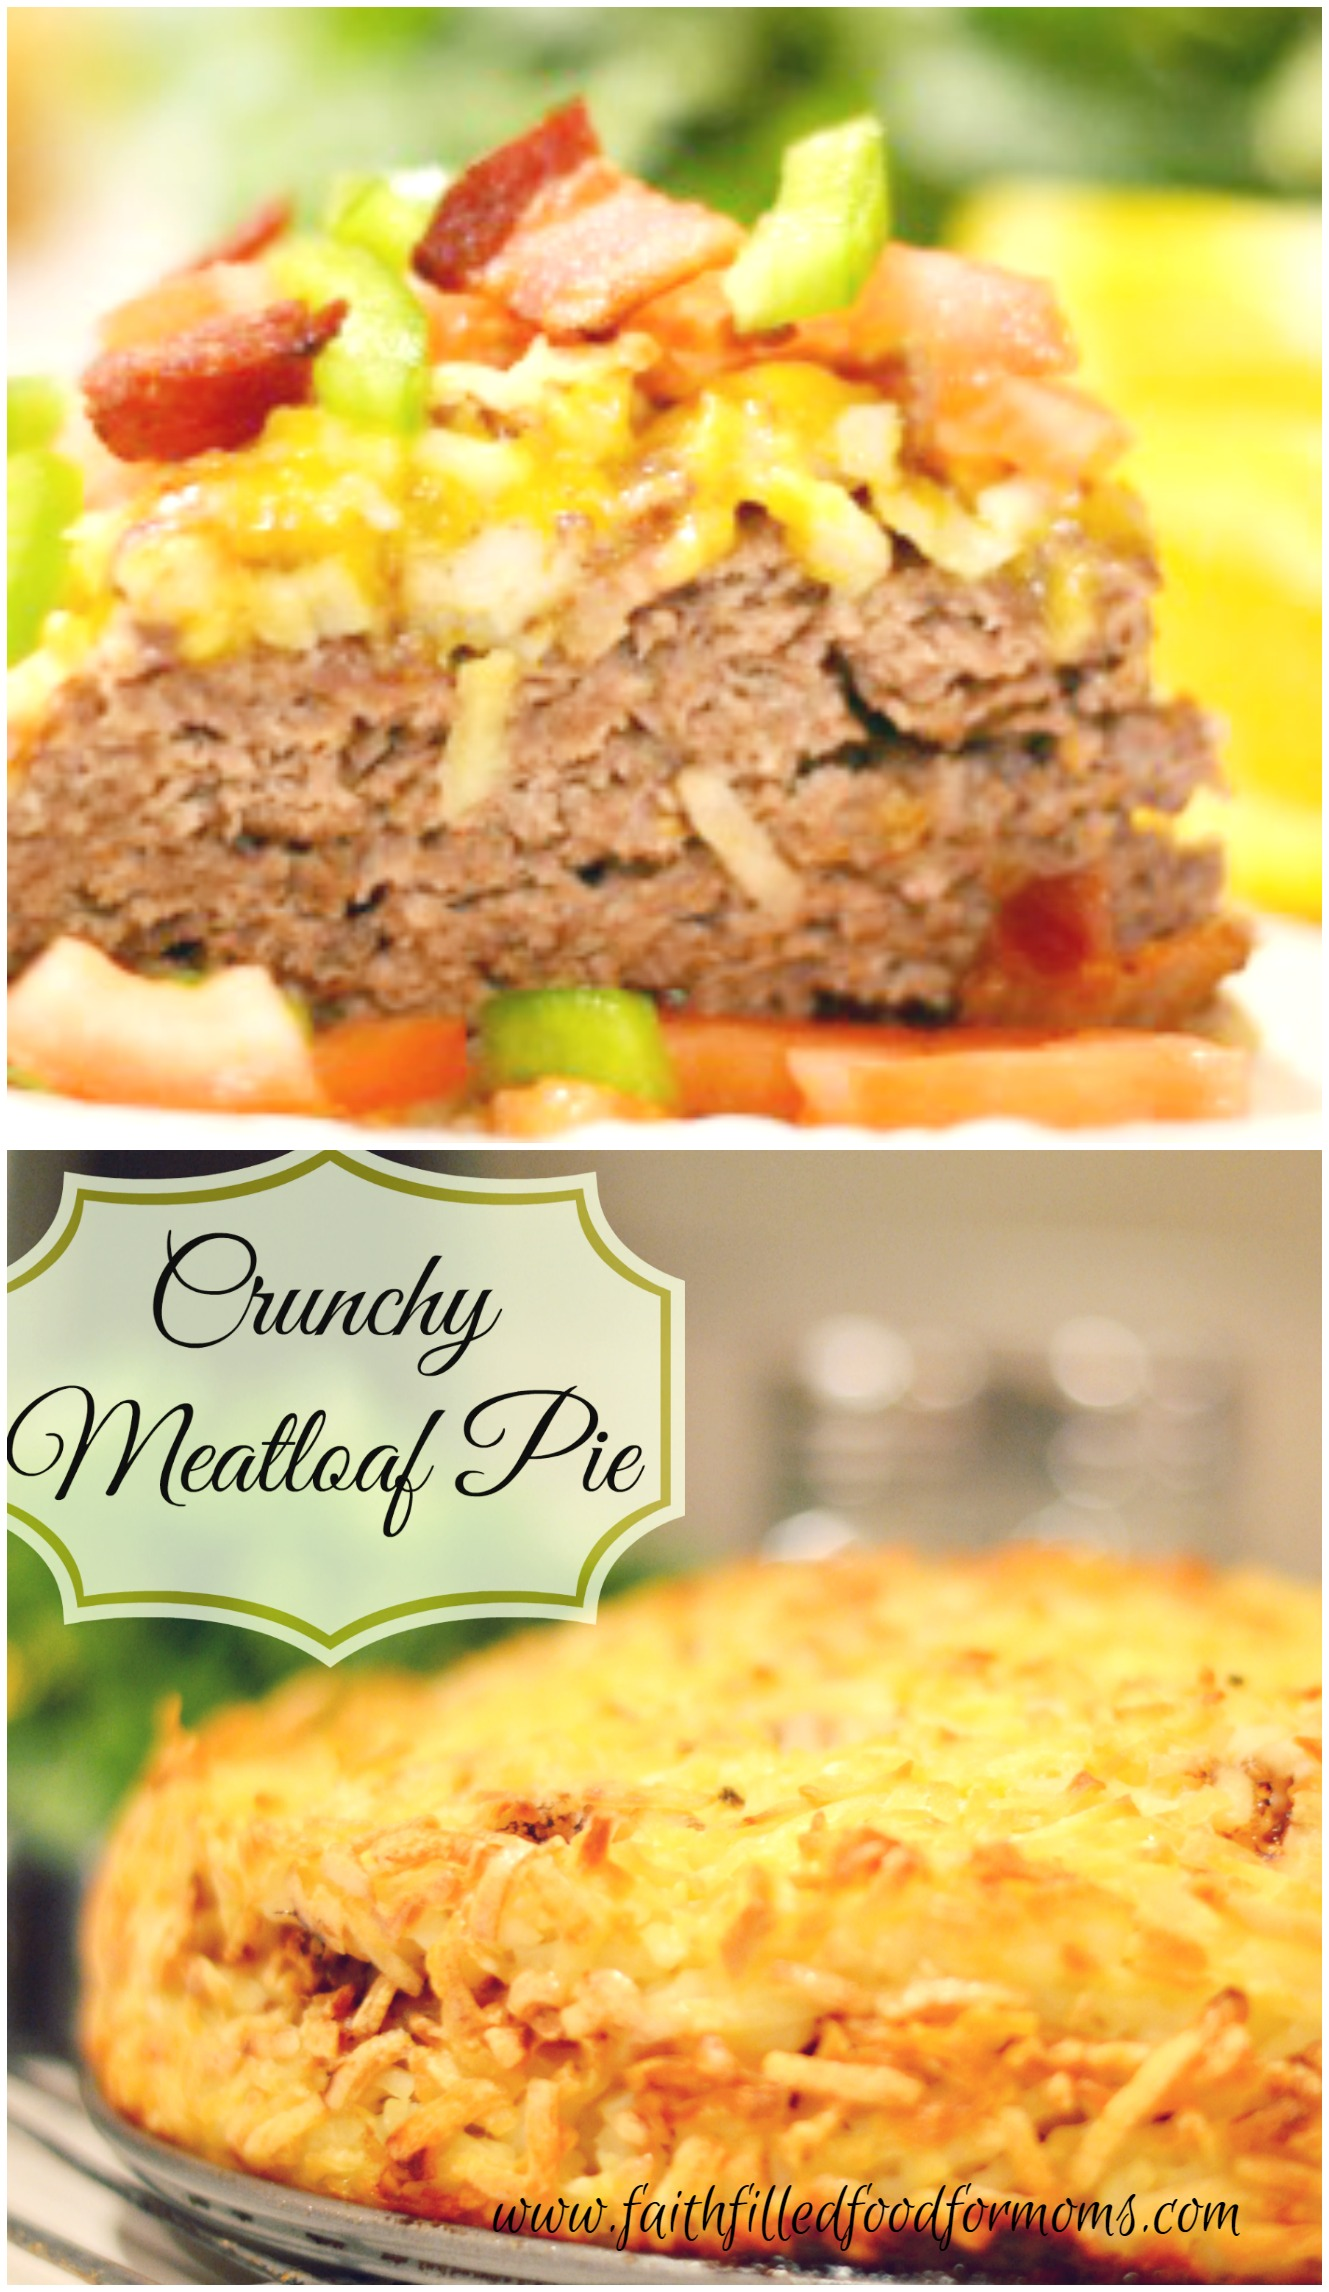 Crunchy Meatloaf Pie is a delicious twist on the old! Crunchy hash browns enveloping a moist yummy meatloaf and topped with bacon, tomatoes and green onion!